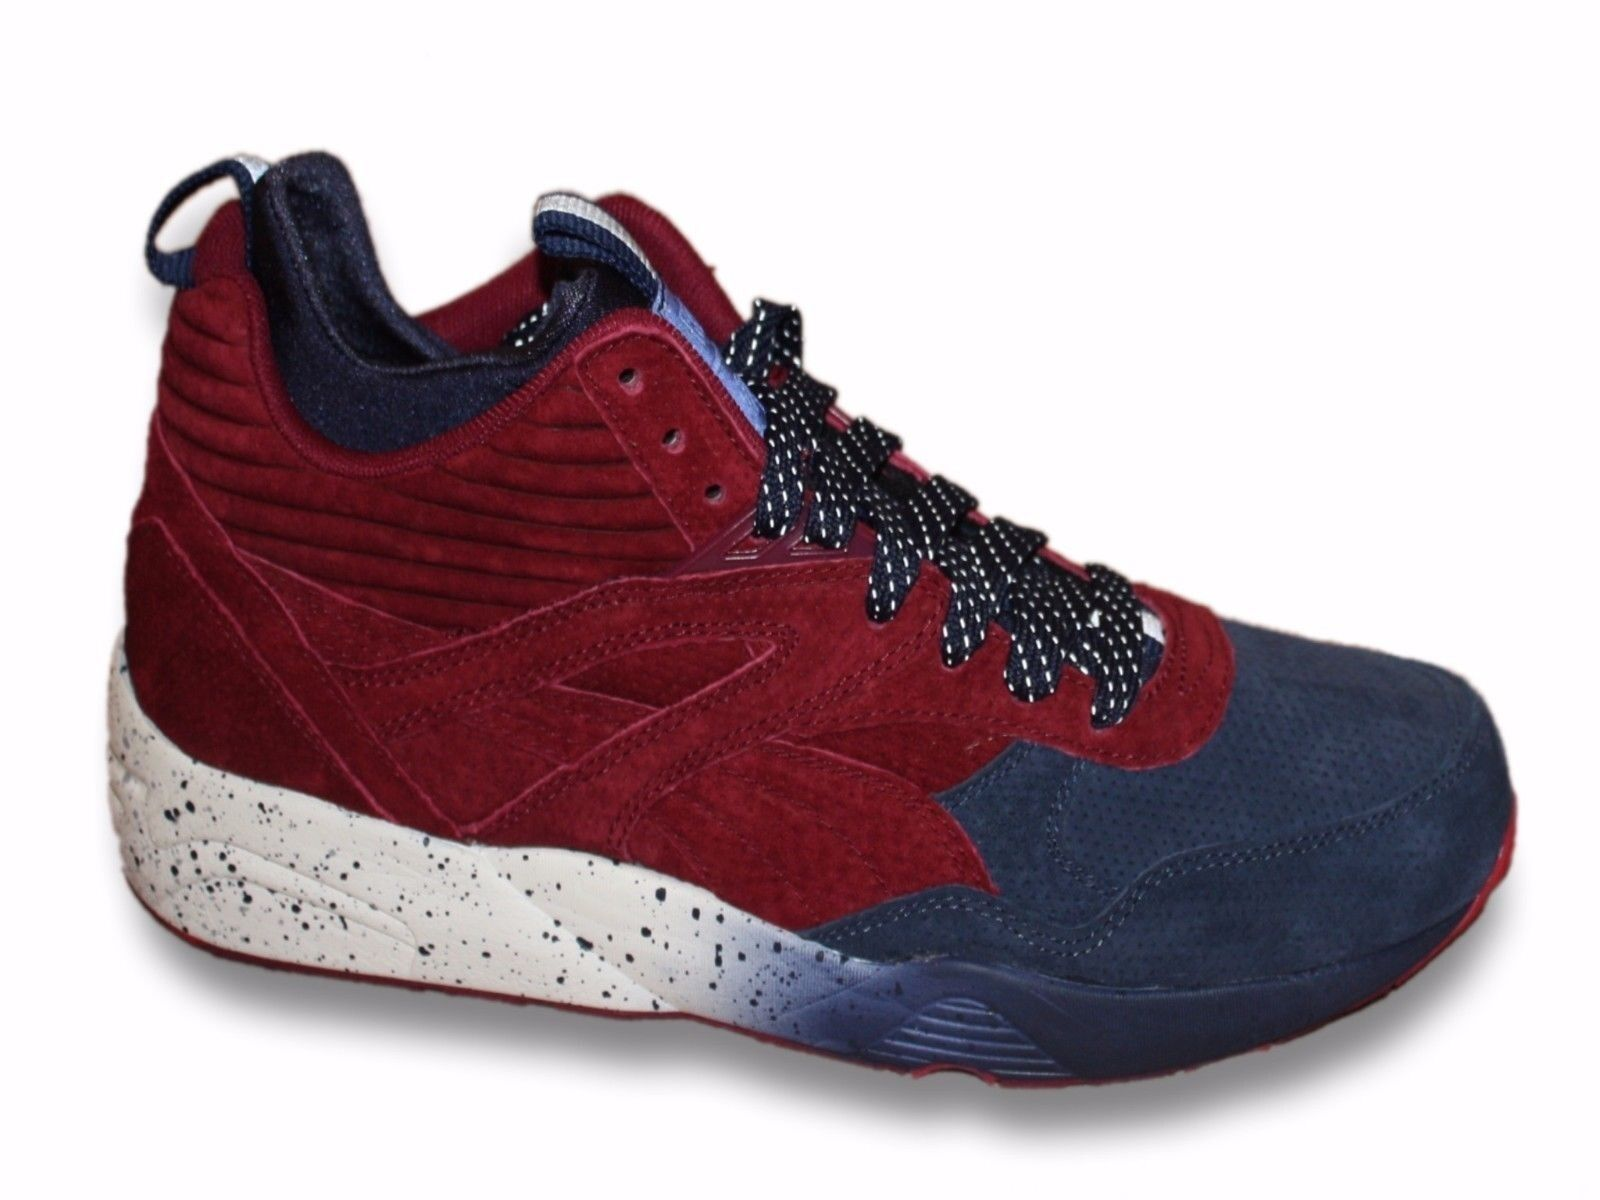 2015 Puma x Ronnie Fieg RF698  Mid 'SAKURA' Pack Kith Sizes 6, 10.5, 11,